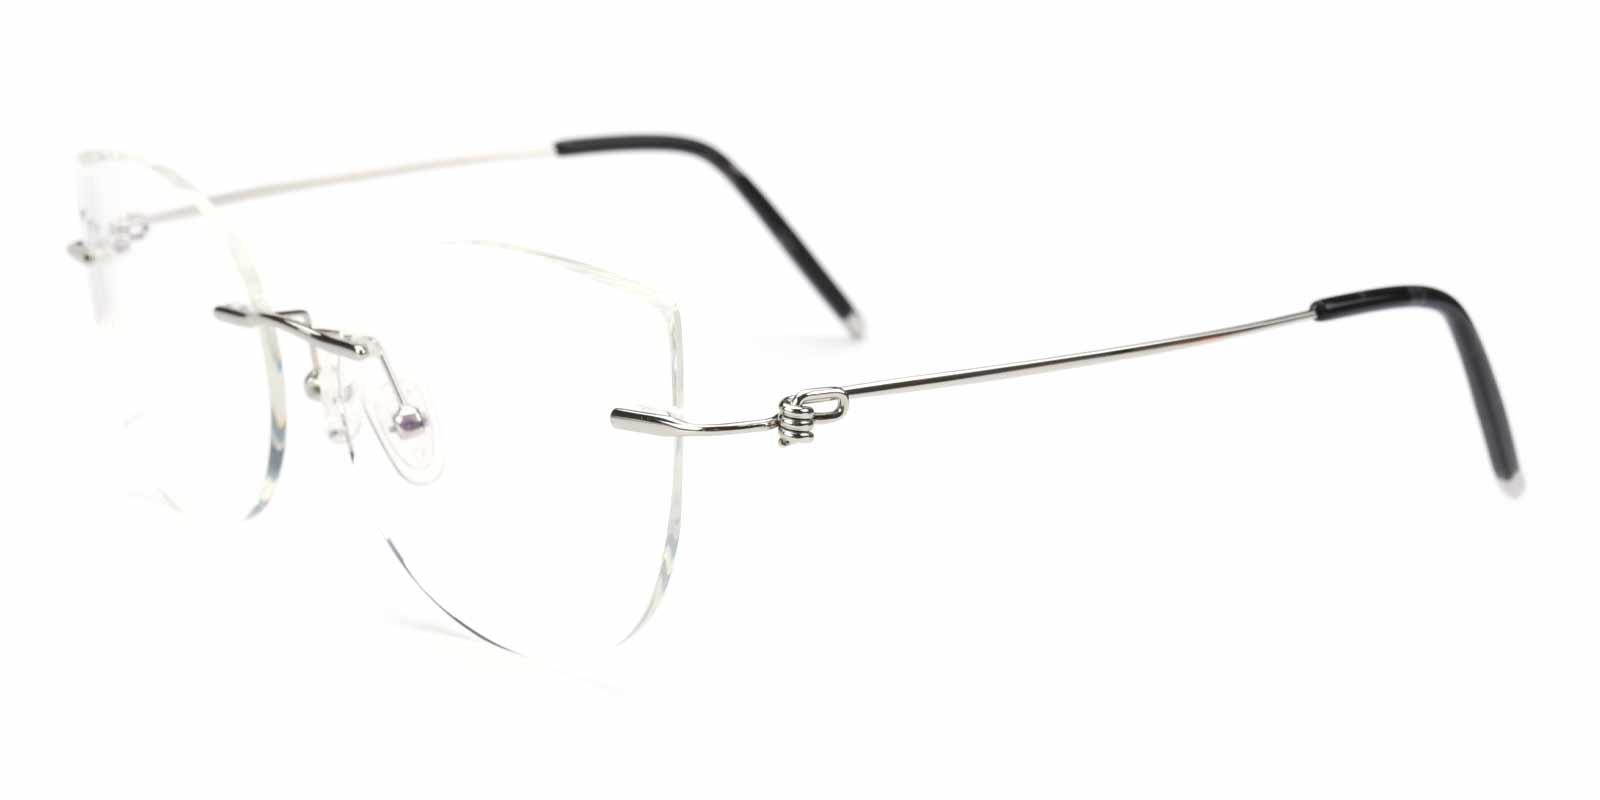 Jooye-Silver-Cat-Metal-Eyeglasses-additional1